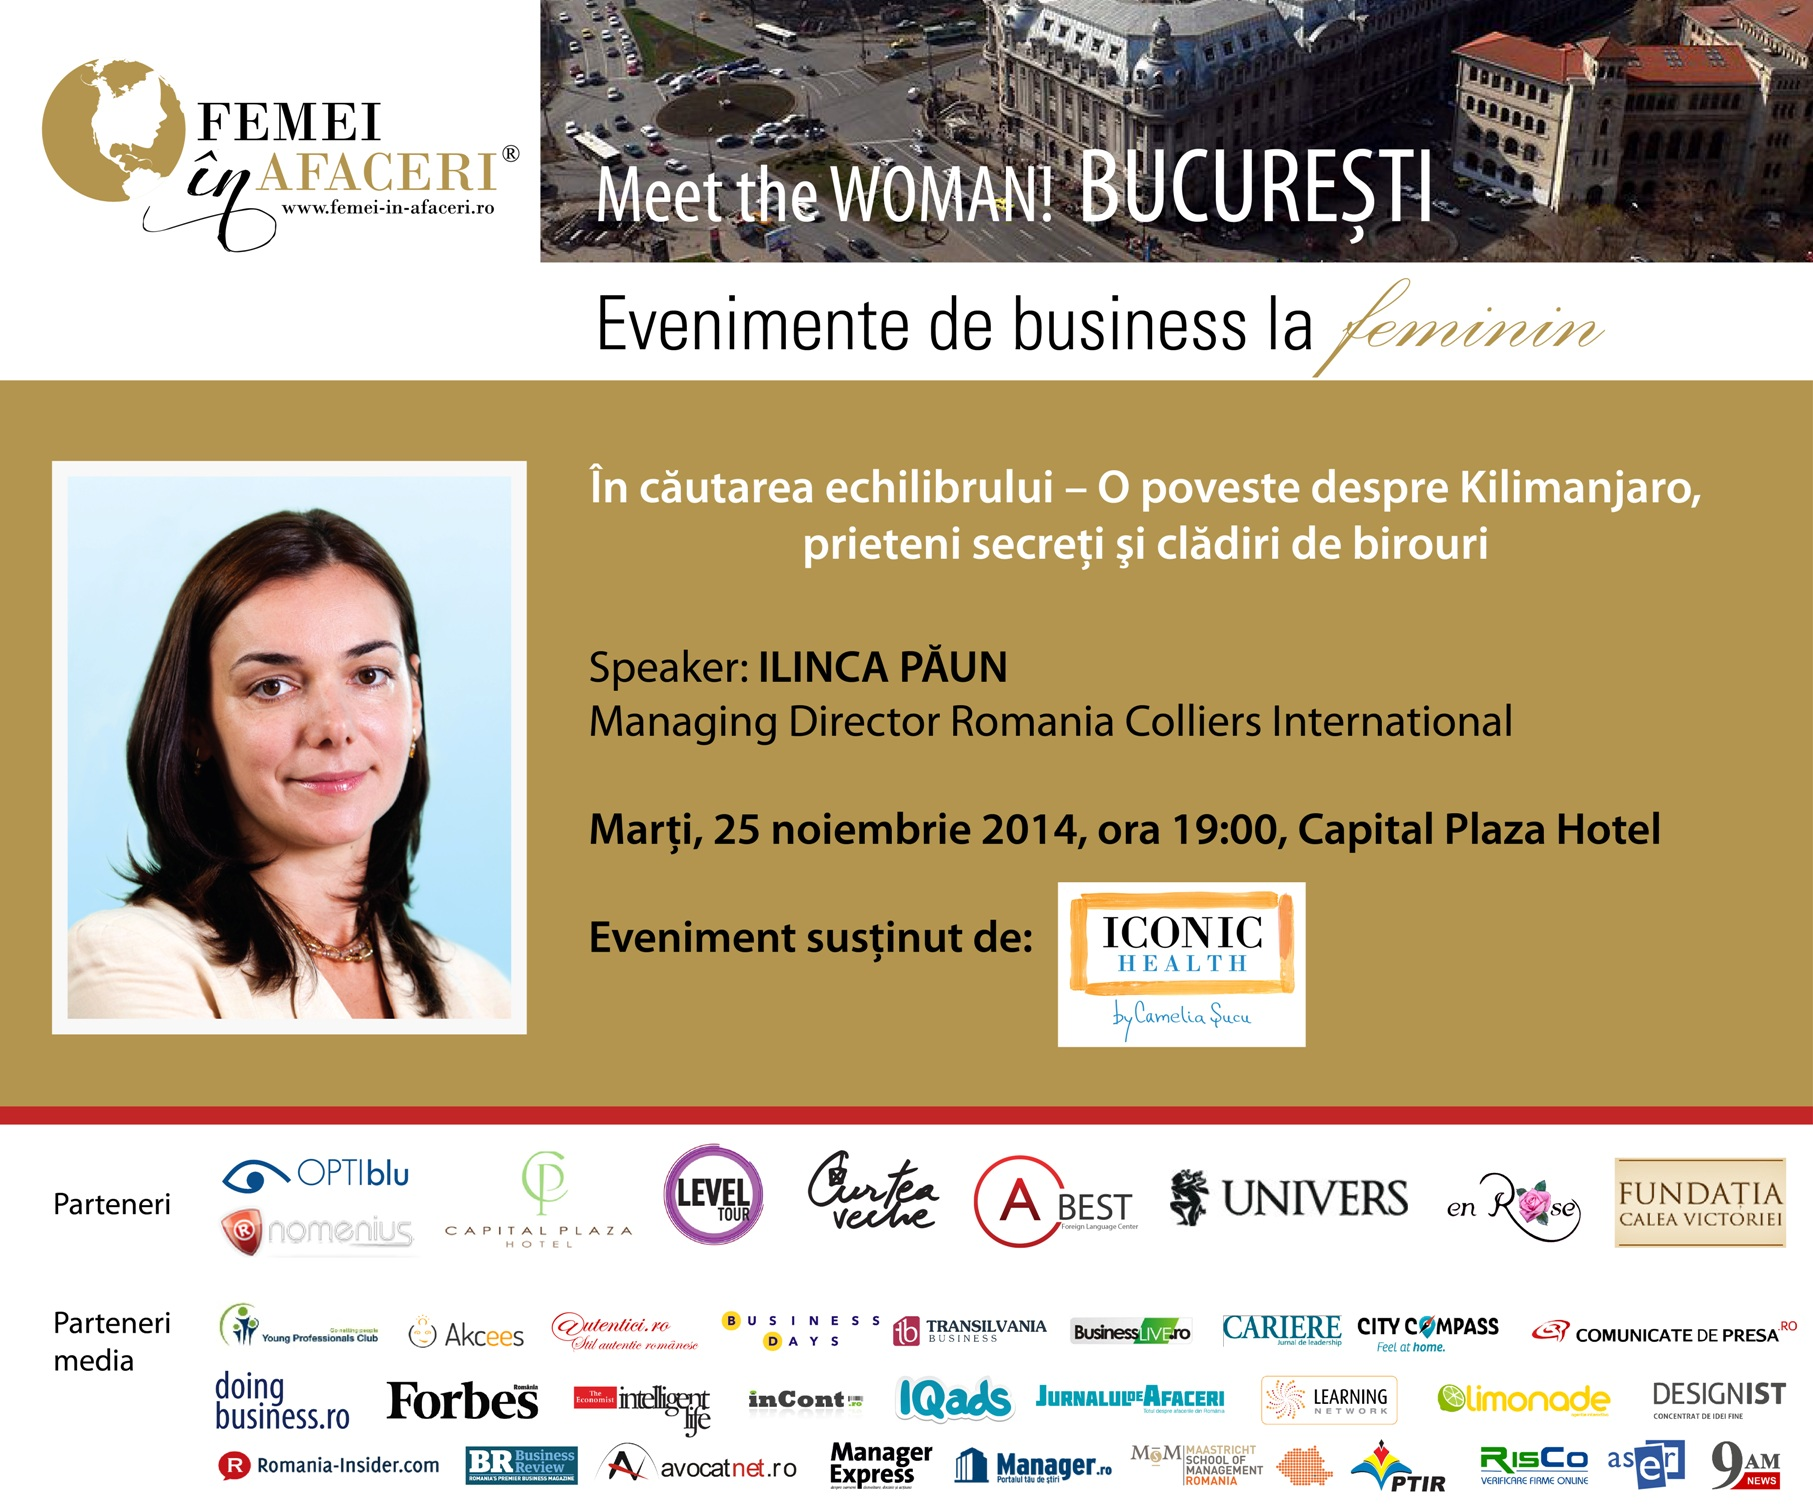 In cautarea echilibrului cu Ilinca Paun,  Managing Director Romania Colliers International, speaker la Meet the WOMAN!